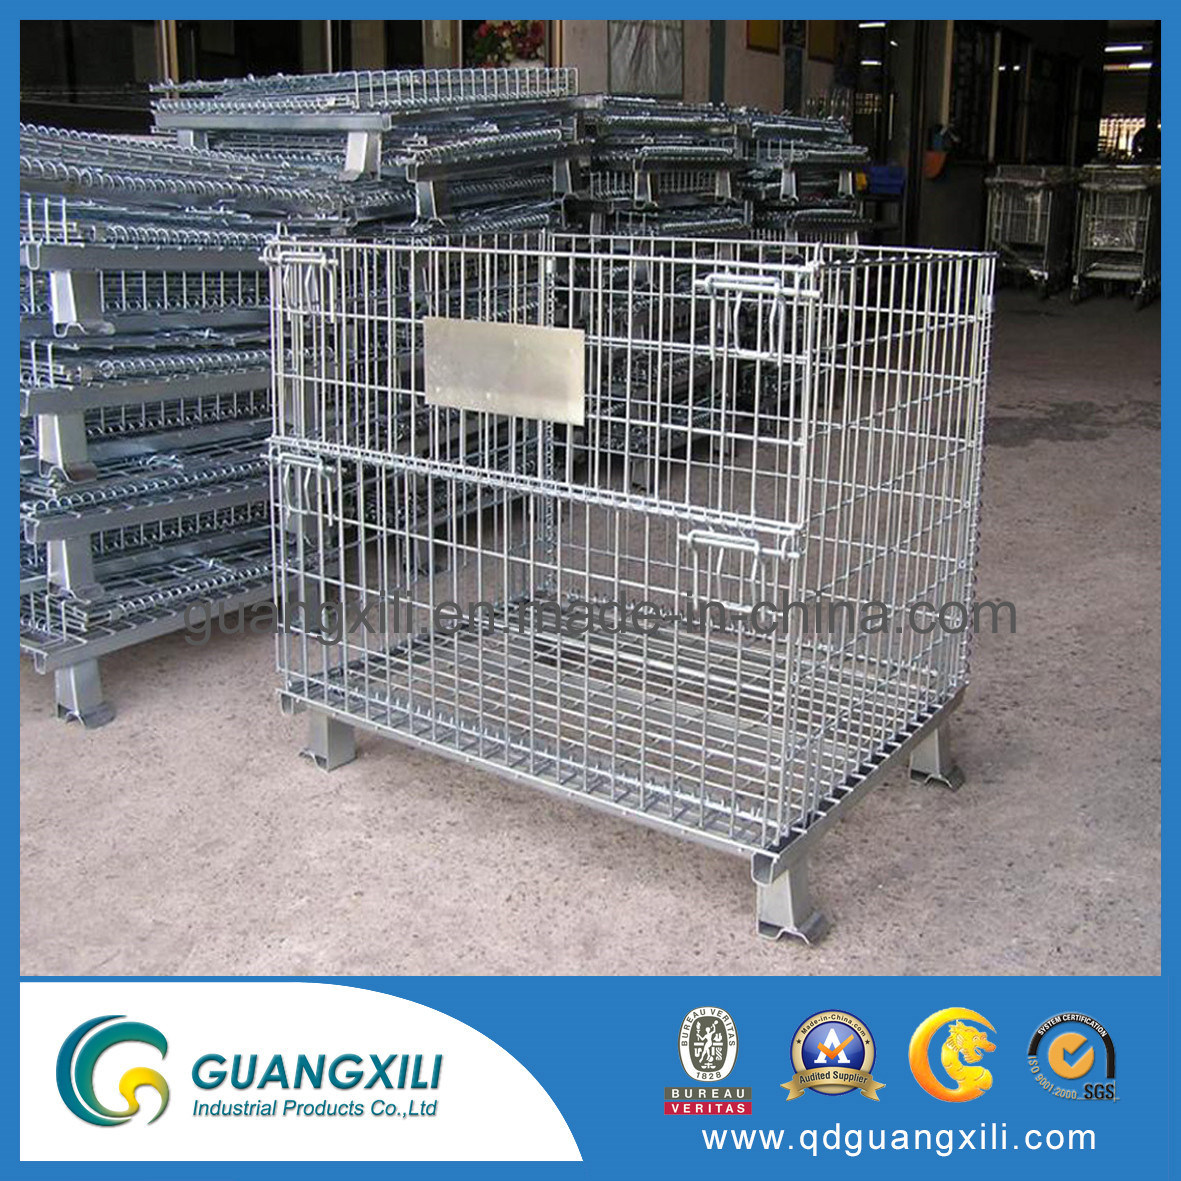 Small Wire Pallet Center 22153 Watt Low Frequency Amplifier Based Ka2206 China Foldable Metal Mesh Cage For Warehouse Storage Rh Guangxili En Made In